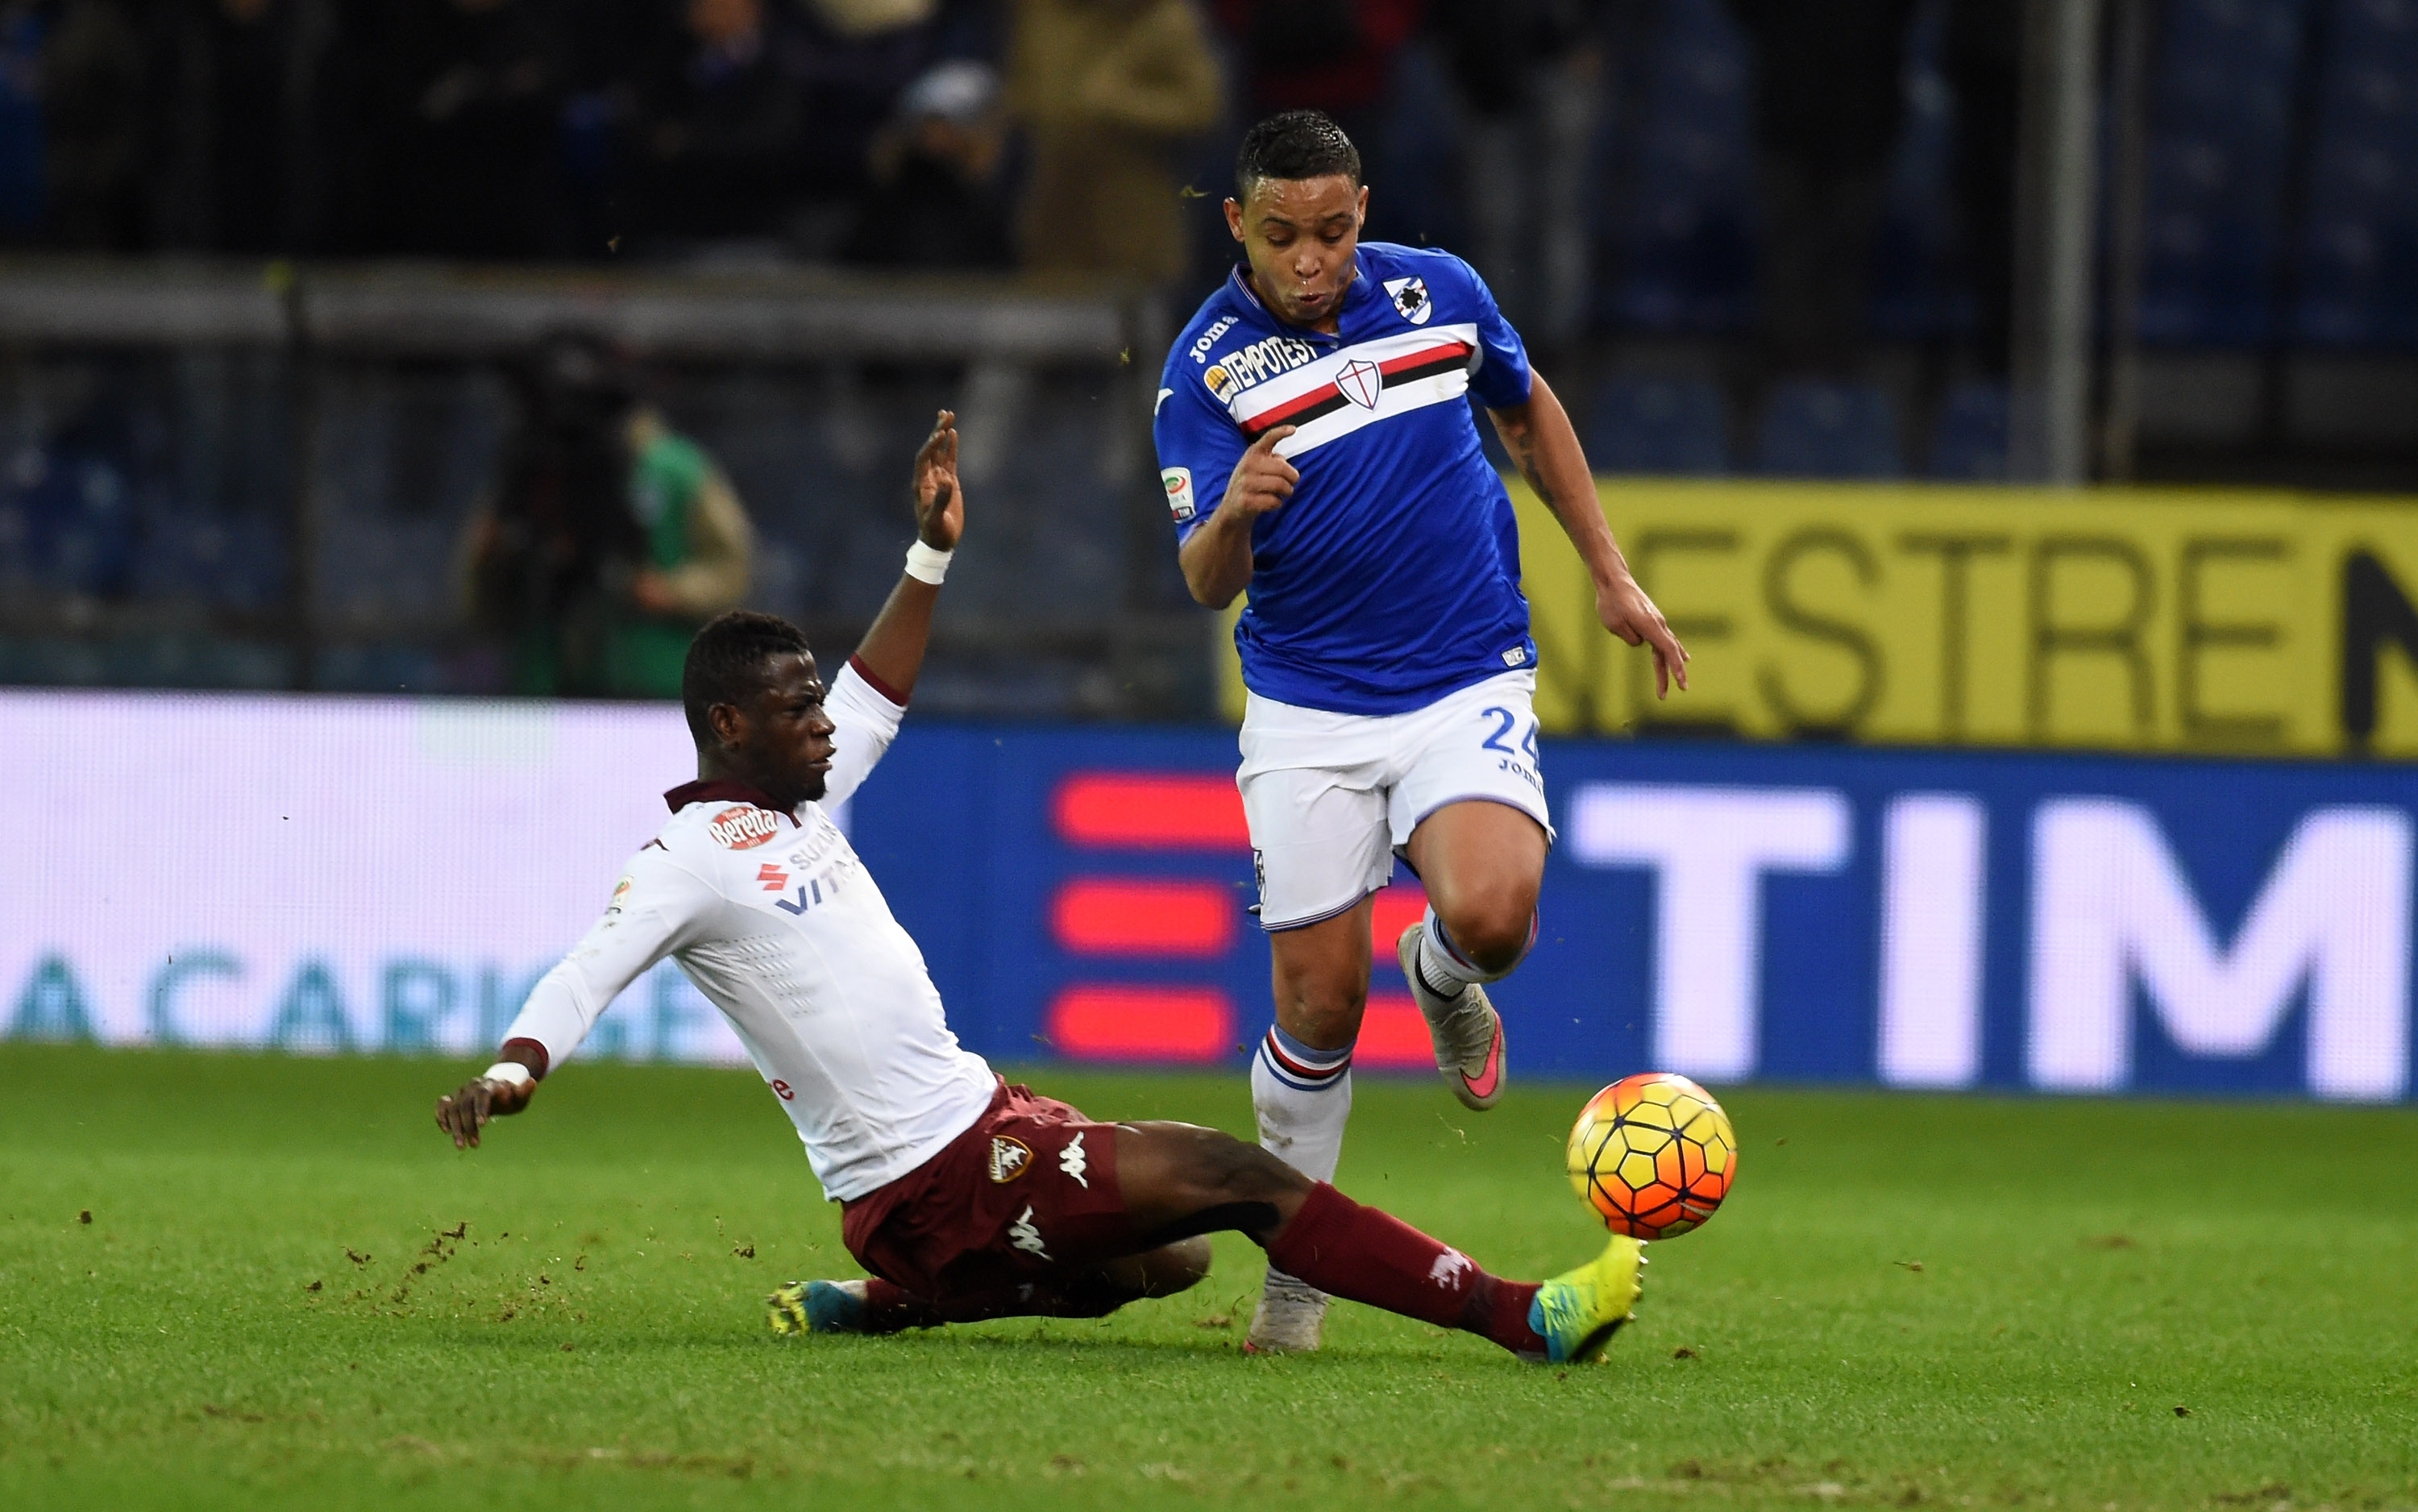 GENOA, ITALY - FEBRUARY 03: Afryie Acquah of Torino FC competes for the ball with Luis Muriel of UC Sampdoria during the Serie A match between UC Sampdoria and Torino FC at Stadio Luigi Ferraris on February 3, 2016 in Genoa, Italy. (Photo by Pier Marco Tacca/Getty Images)